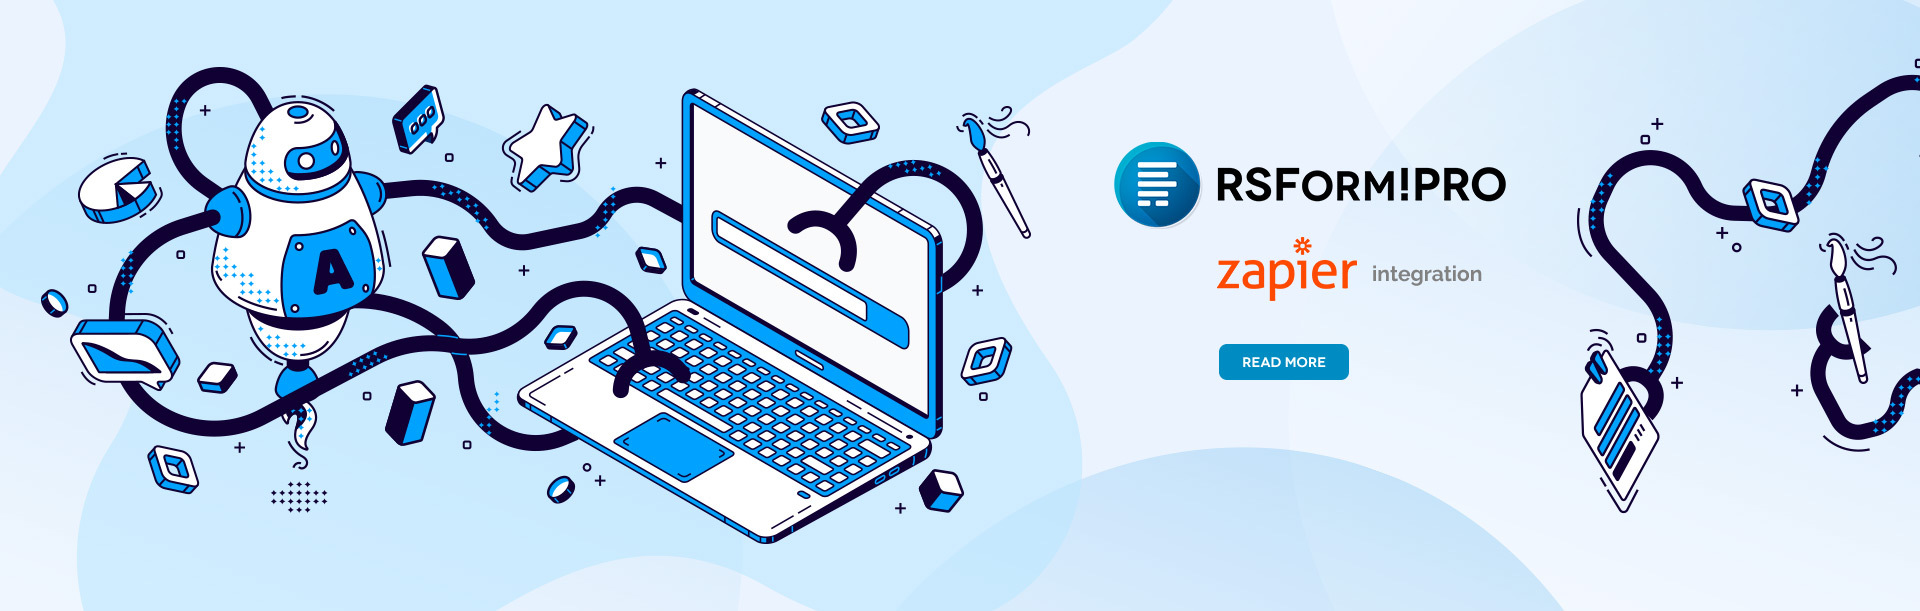 RSForm!Pro Zapier integration